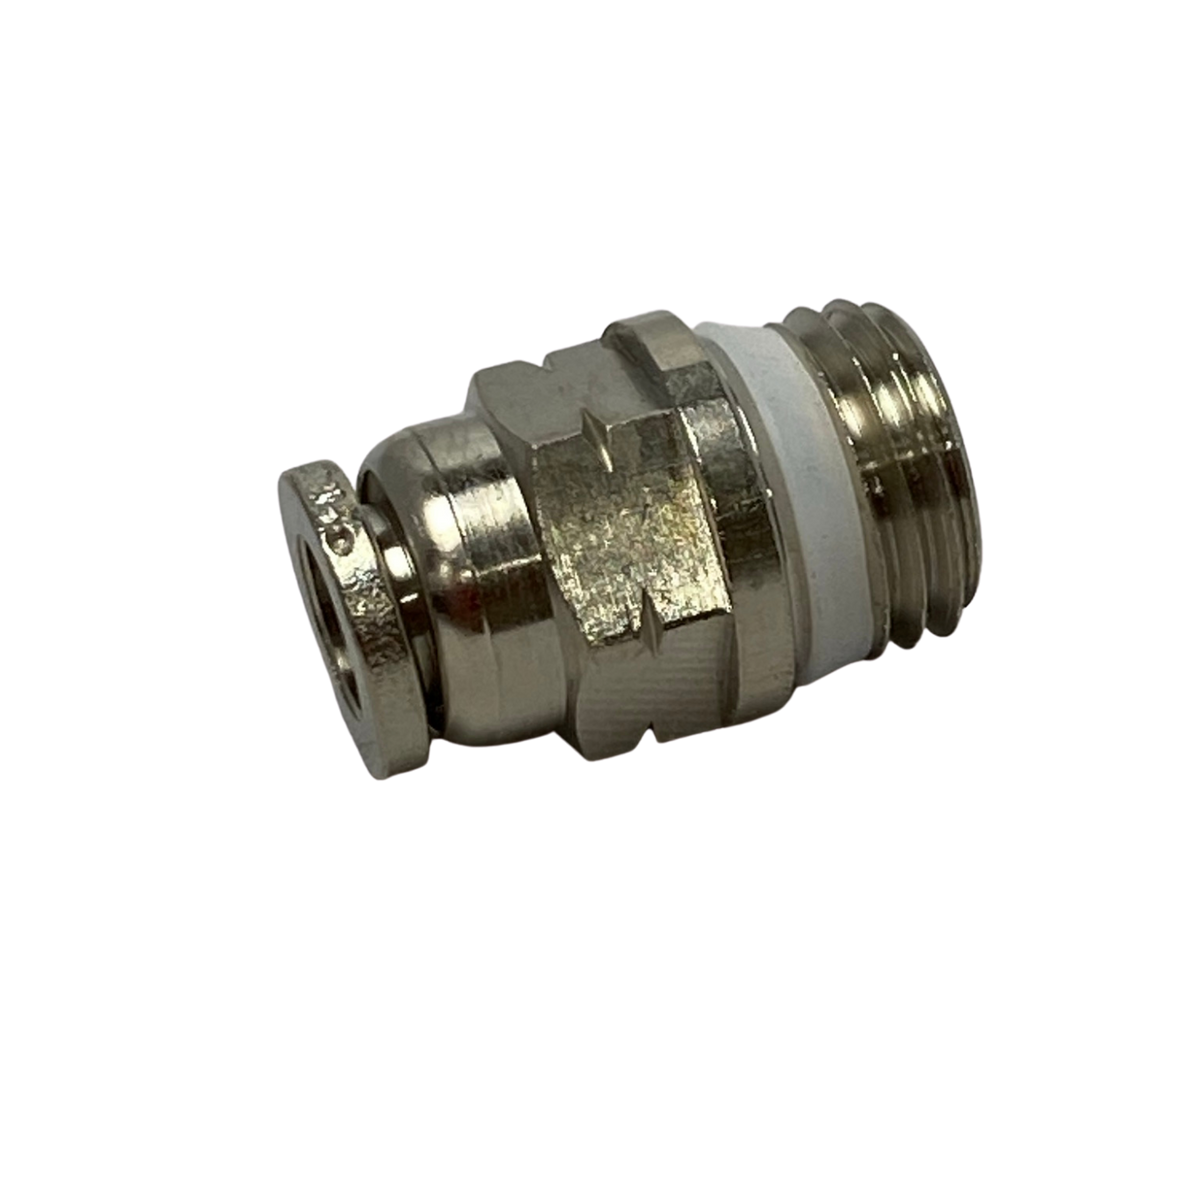 Numatics | Male connector 1/4 in thread 1/4 in tube | INWB103-104-021